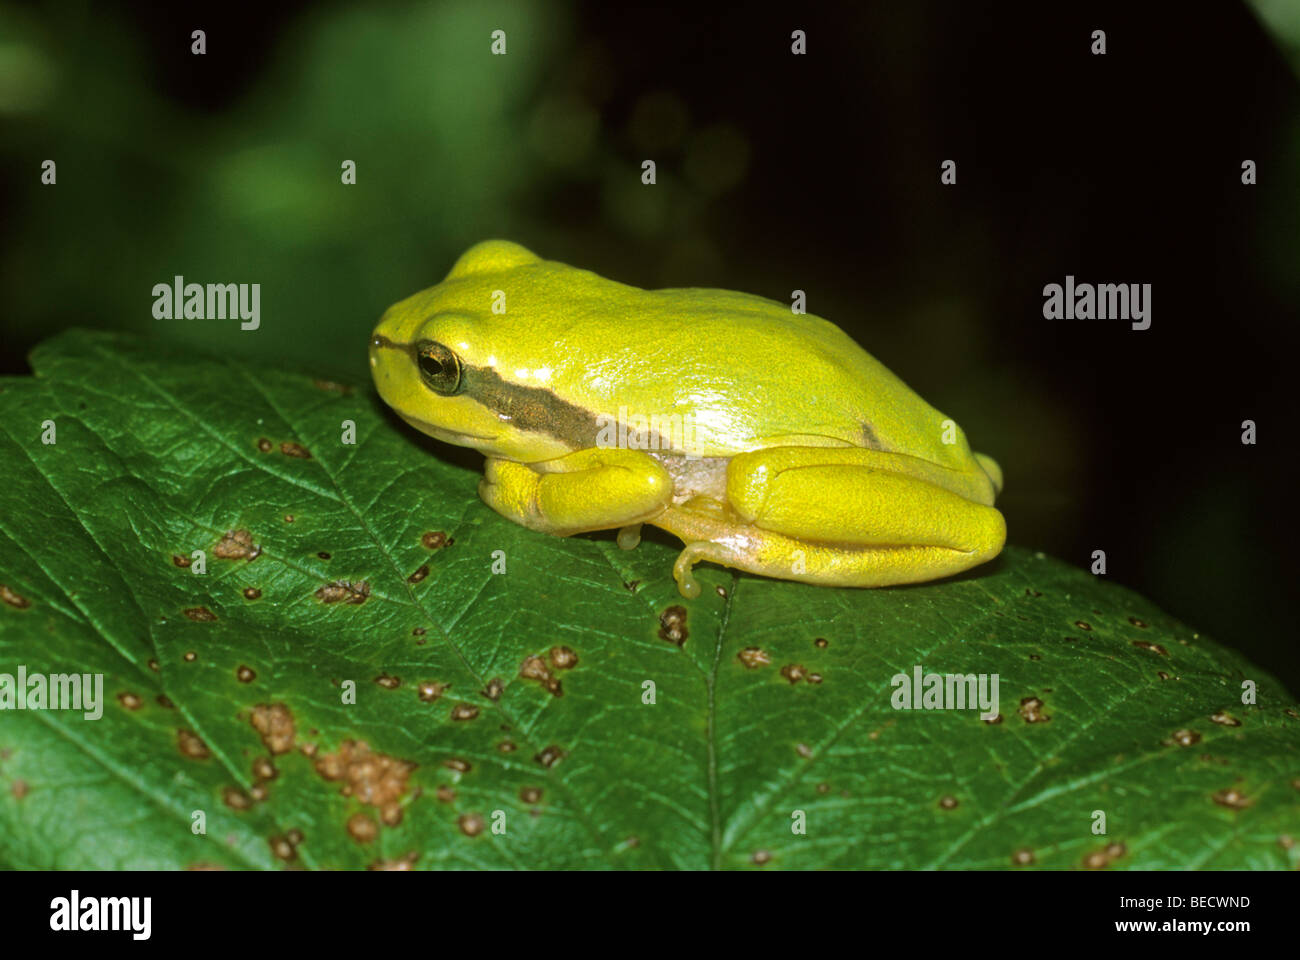 Treefrog (Hyla arborea), very yellowy tinted juvenile resting in the sun - Stock Image